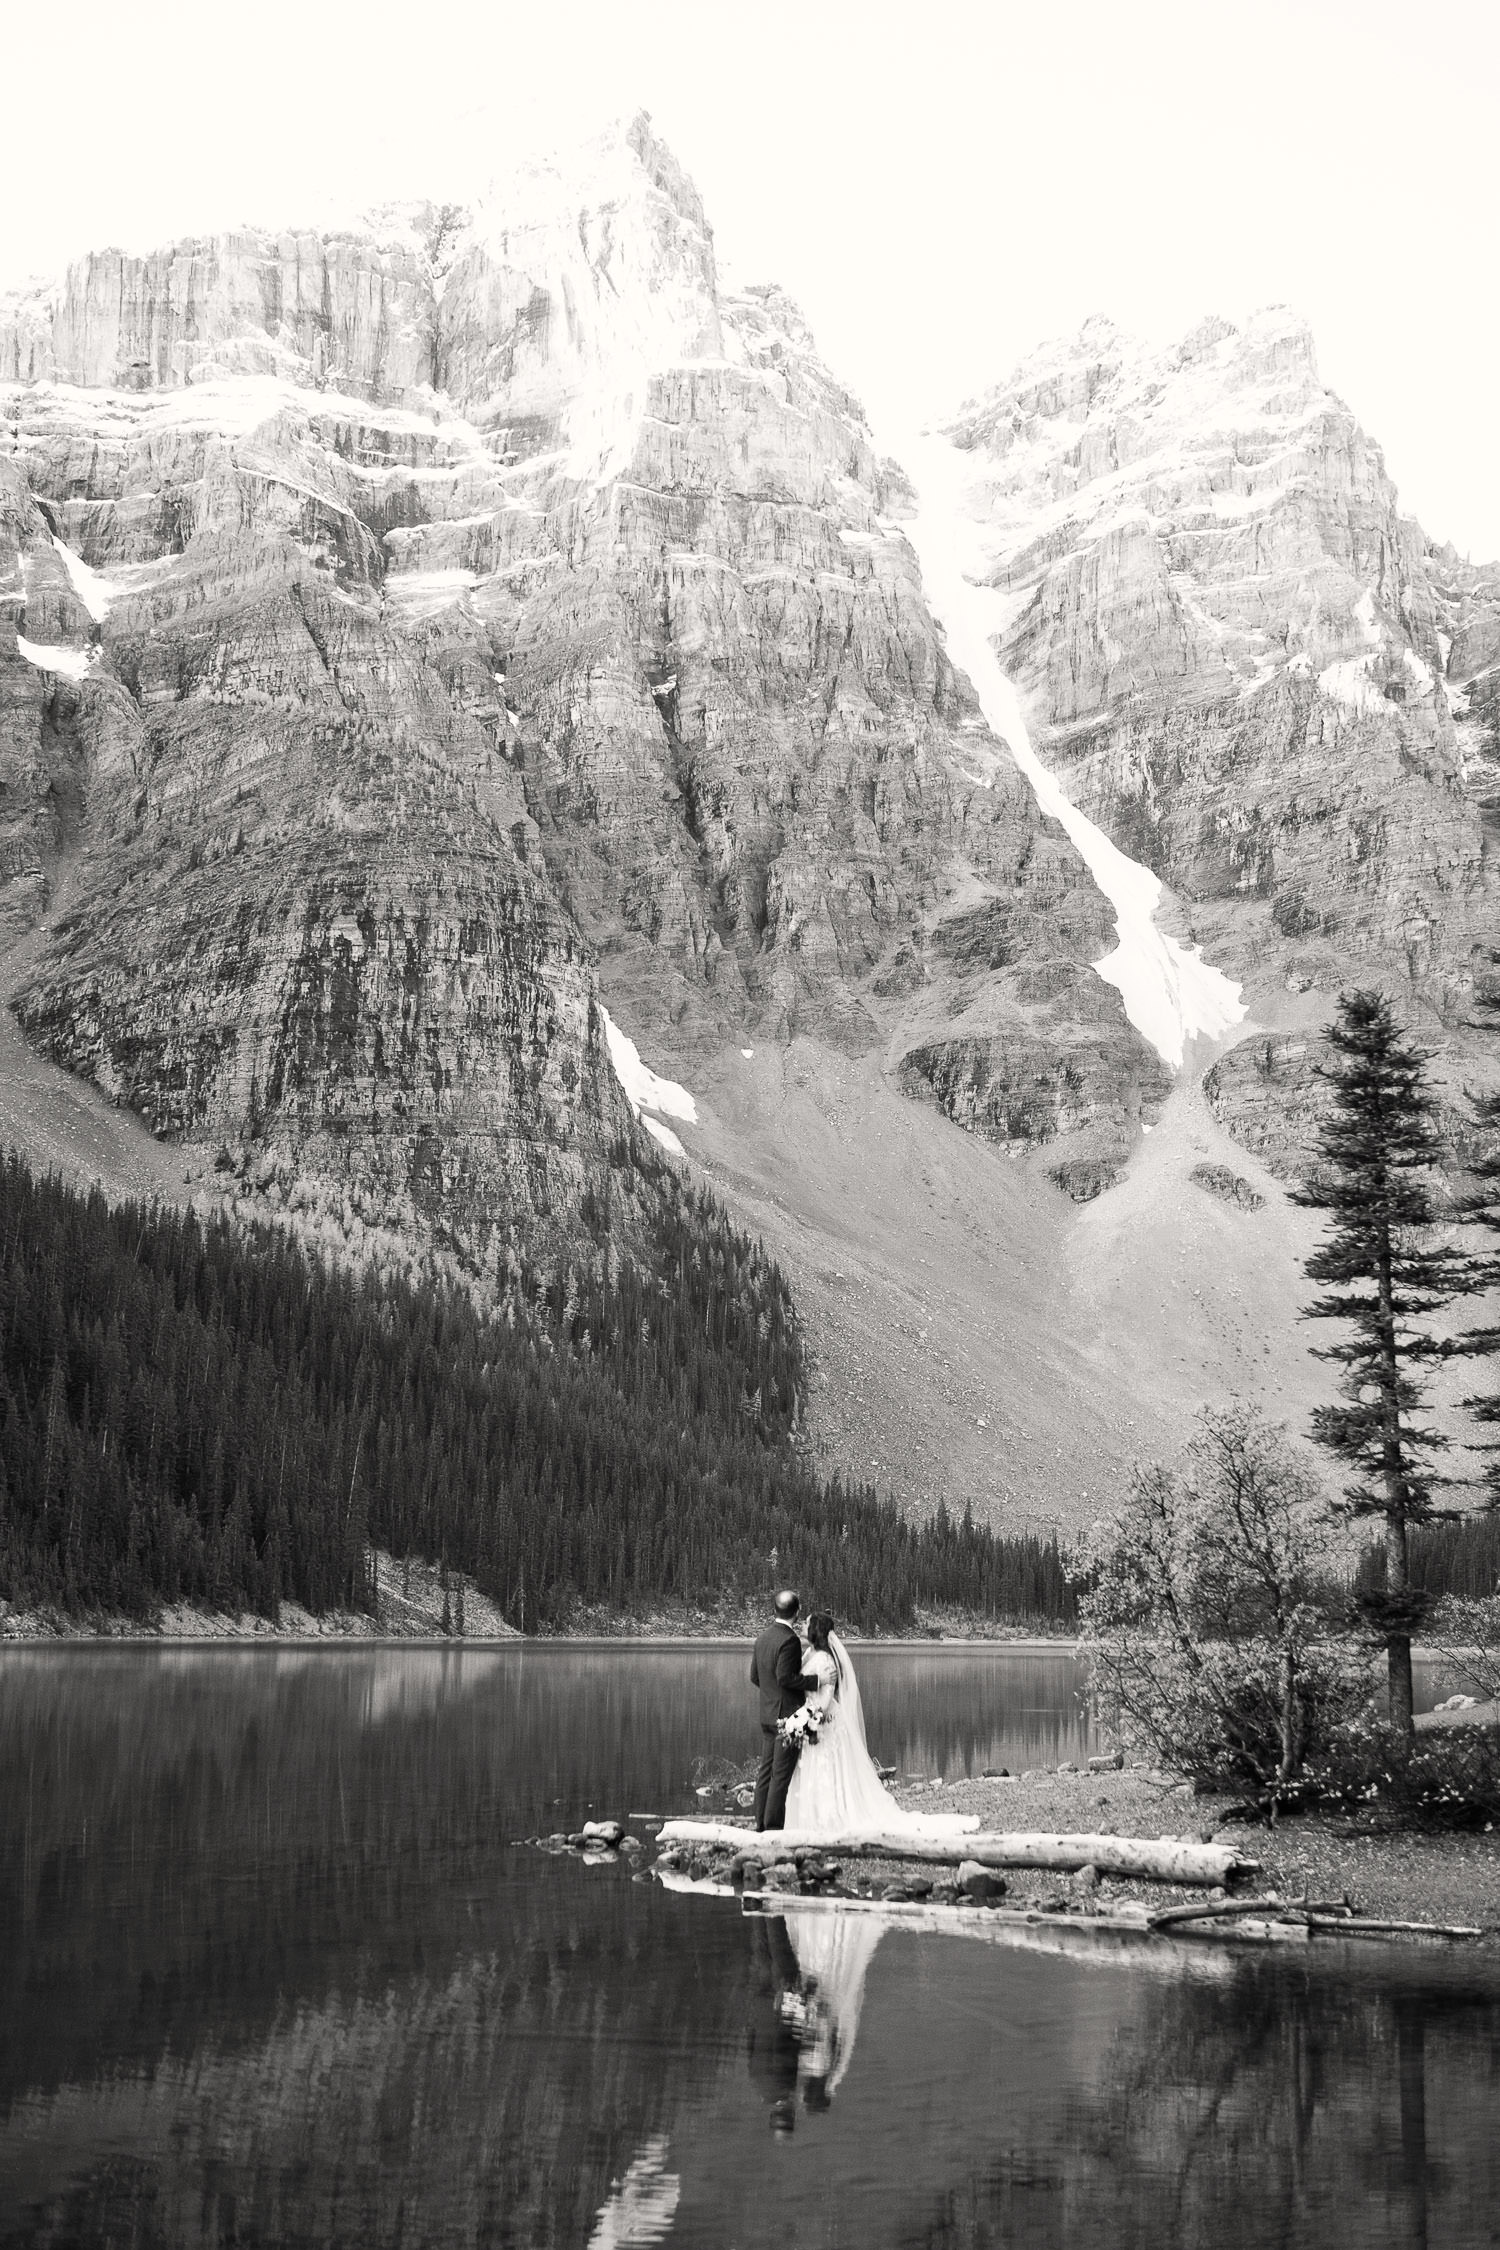 bridal portrait at Moraine Lake captured by Tara Whittaker Photography